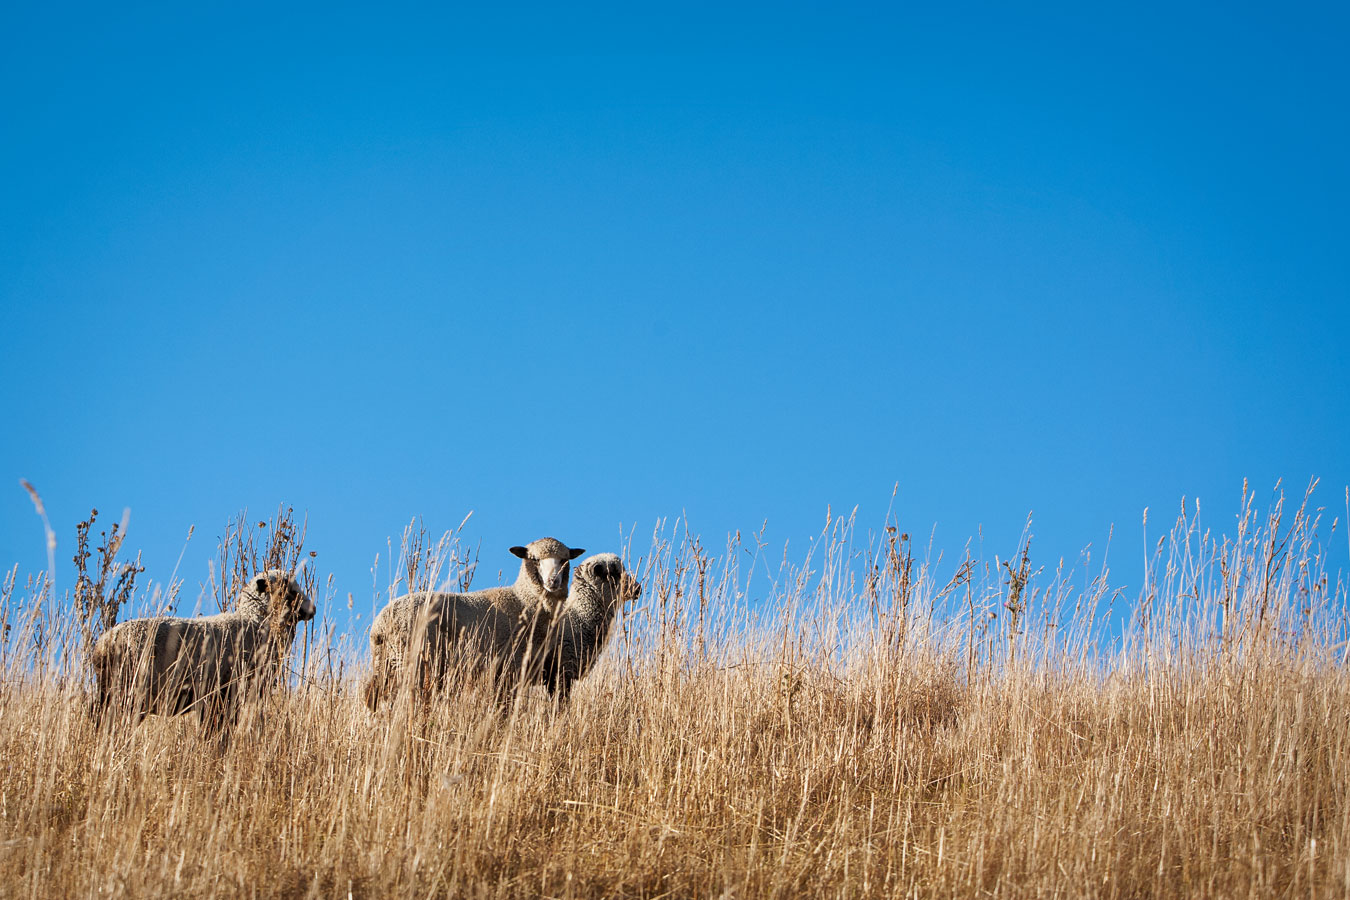 New Zealand merino story shot by Sharon Blance, Melbourne editorial and commercial photographer